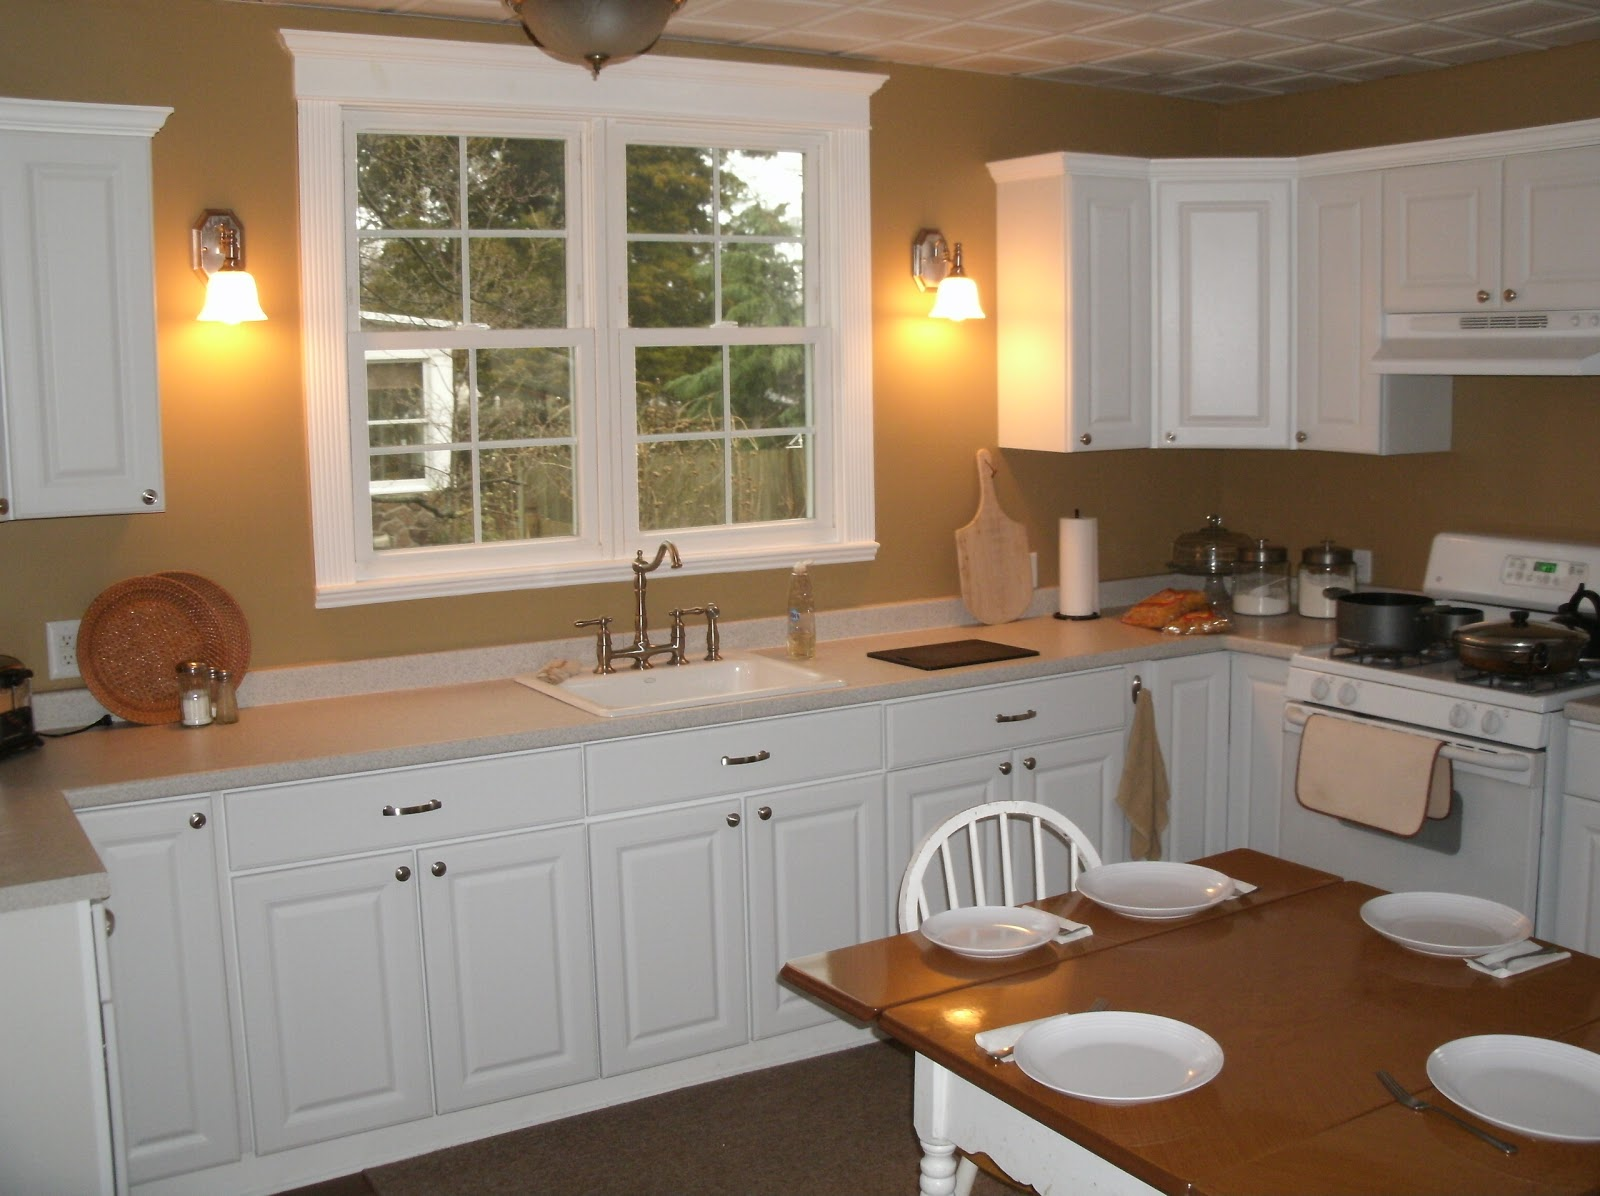 Home Remodeling and improvements Tips and How to's ...